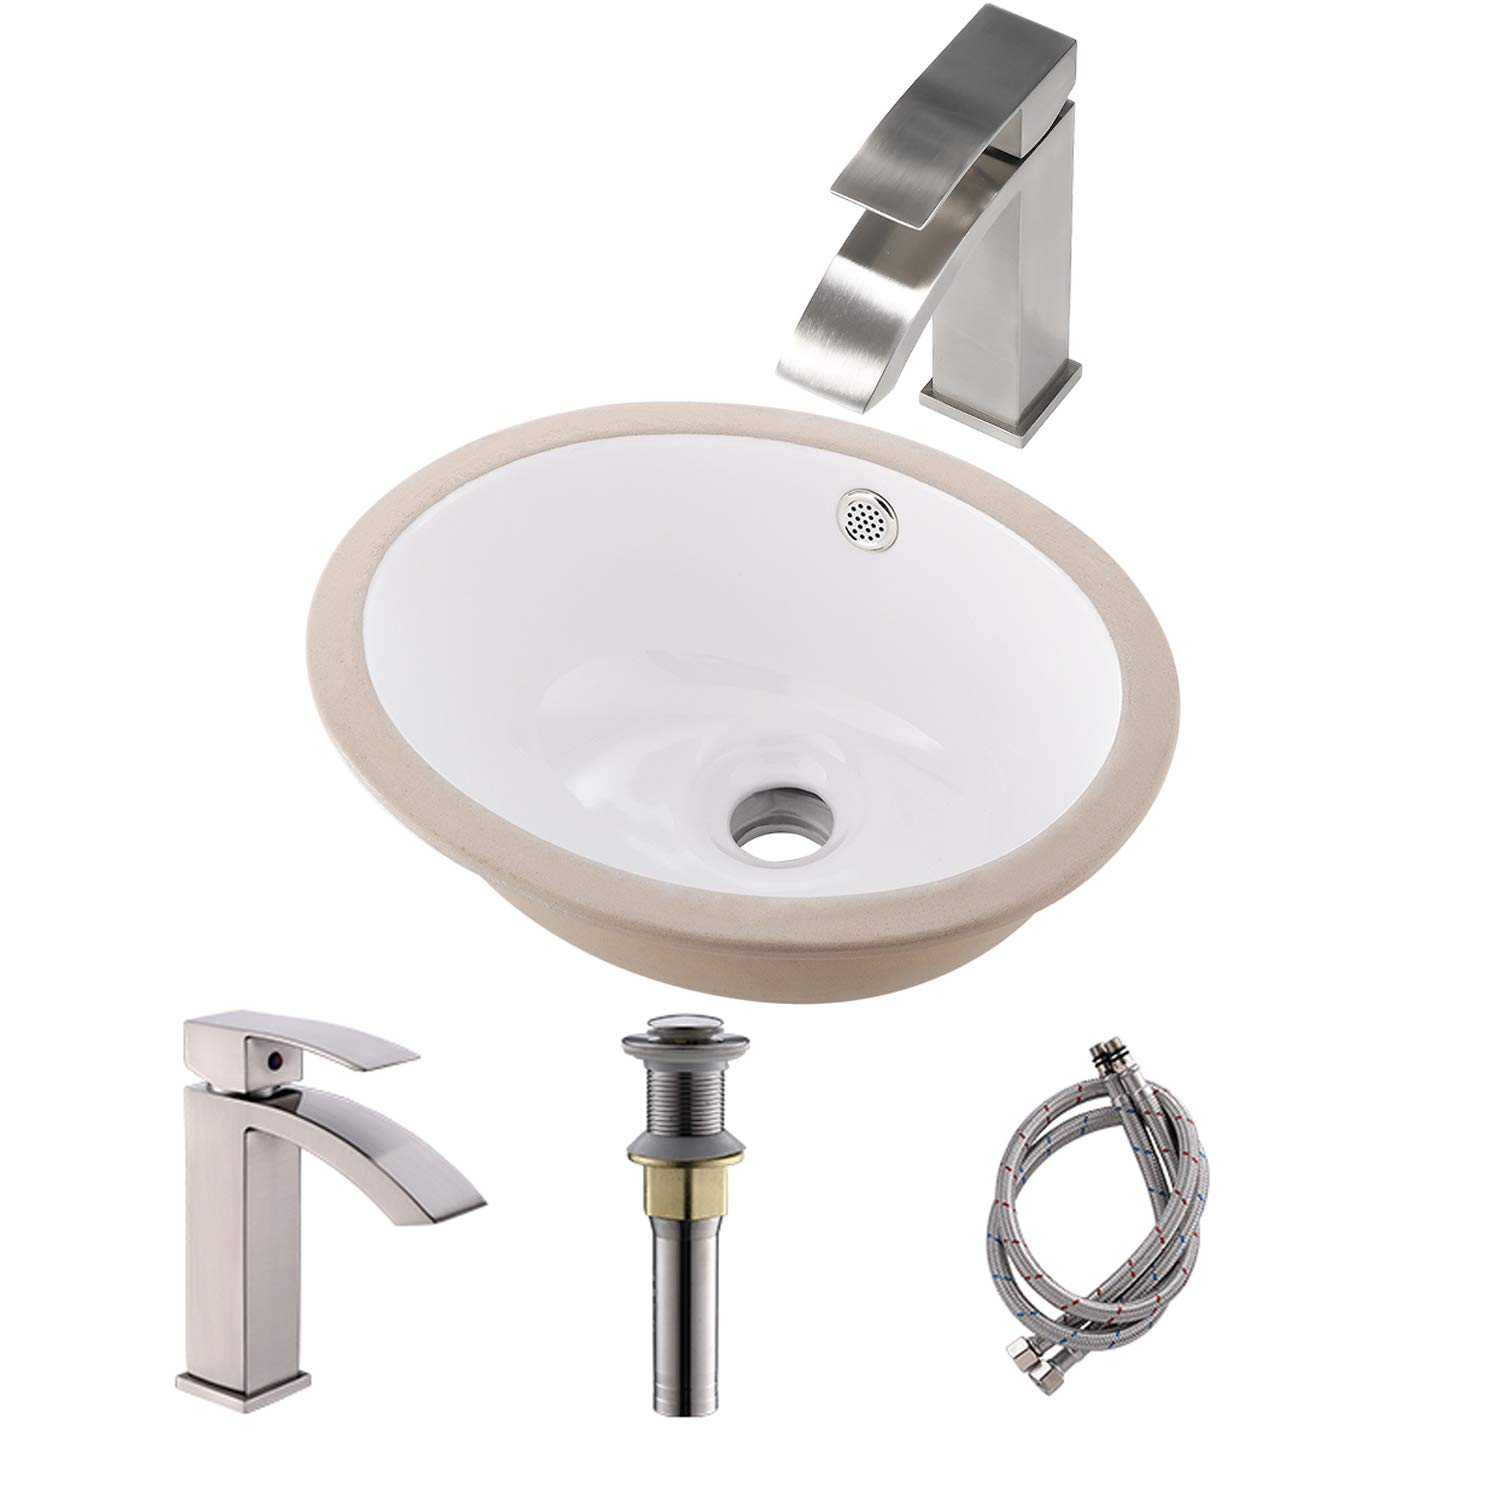 Bokaiya 19x15 Rectangle Bathroom Vessel Sinks And Faucet Combo Above Counter Modern White Porcelain Ceramic Countertop Bathroom Vanity Bowl Tall Brushed Nickel Faucet And Pop Up Drain Combo Tools Home Improvement